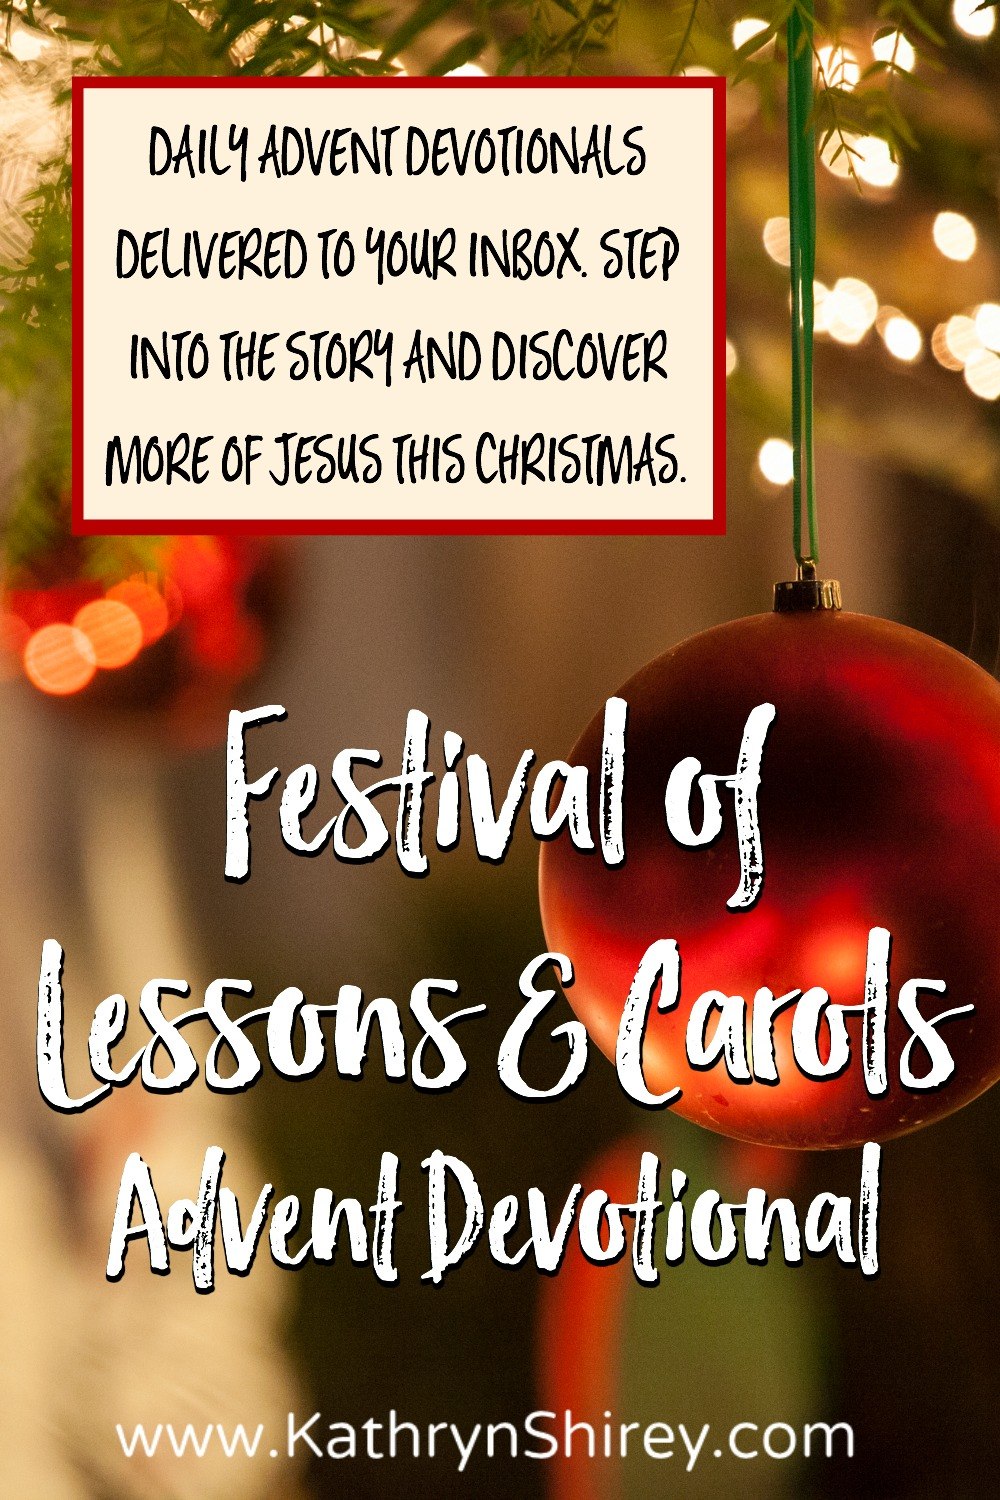 Step into the story and discover more of Jesus this Christmas. Daily Advent devotionals delivered to your inbox, based on the Festival of Lessons & Carols.